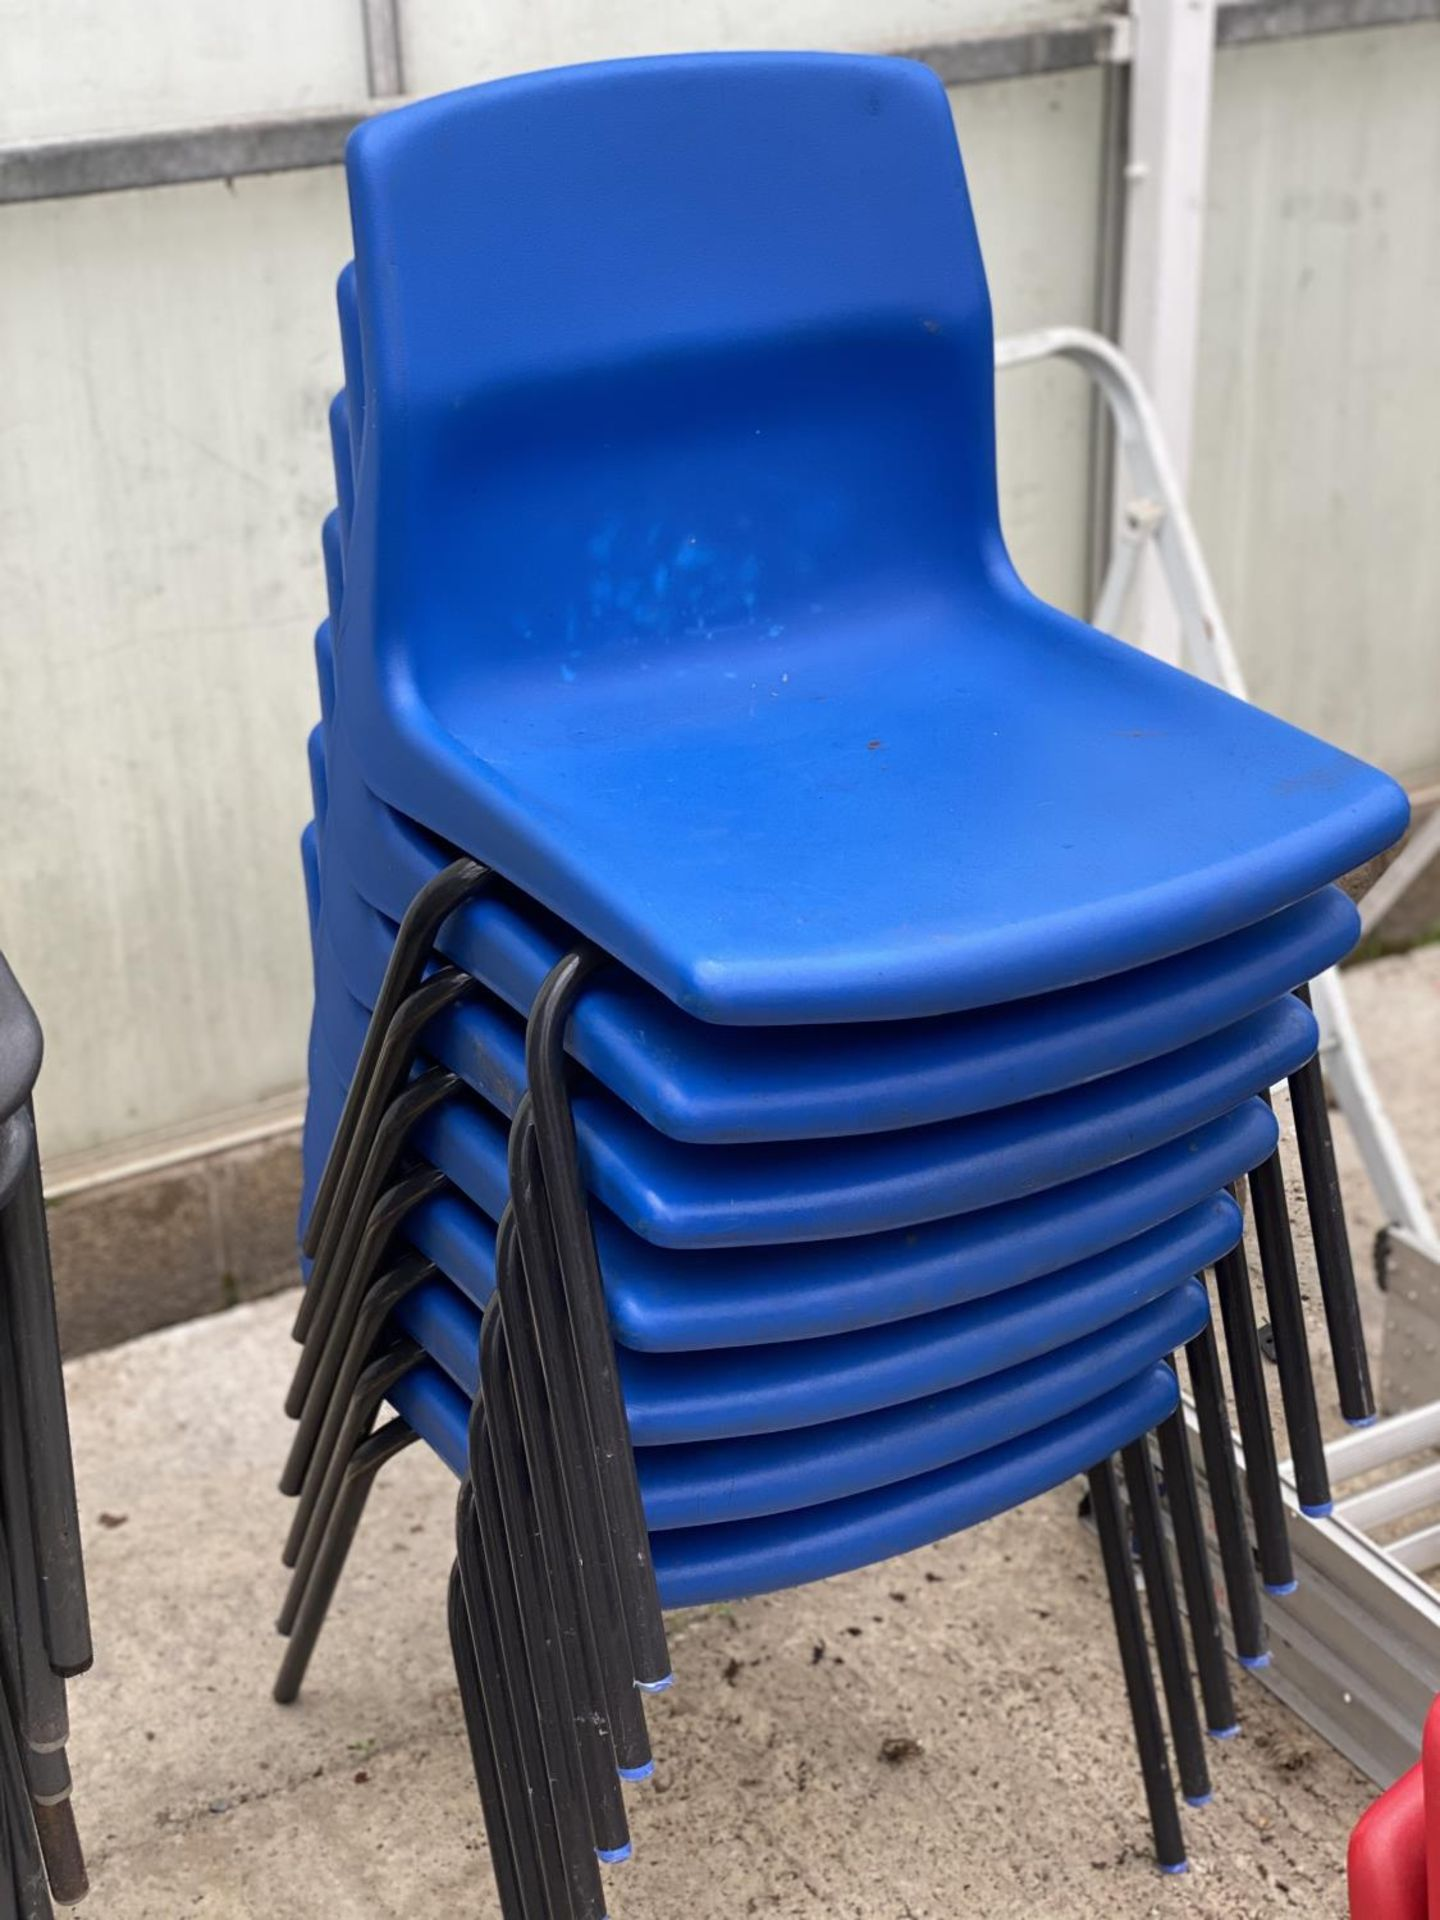 25 INFANT STACKING CHAIRS - N0 VAT - Image 4 of 4